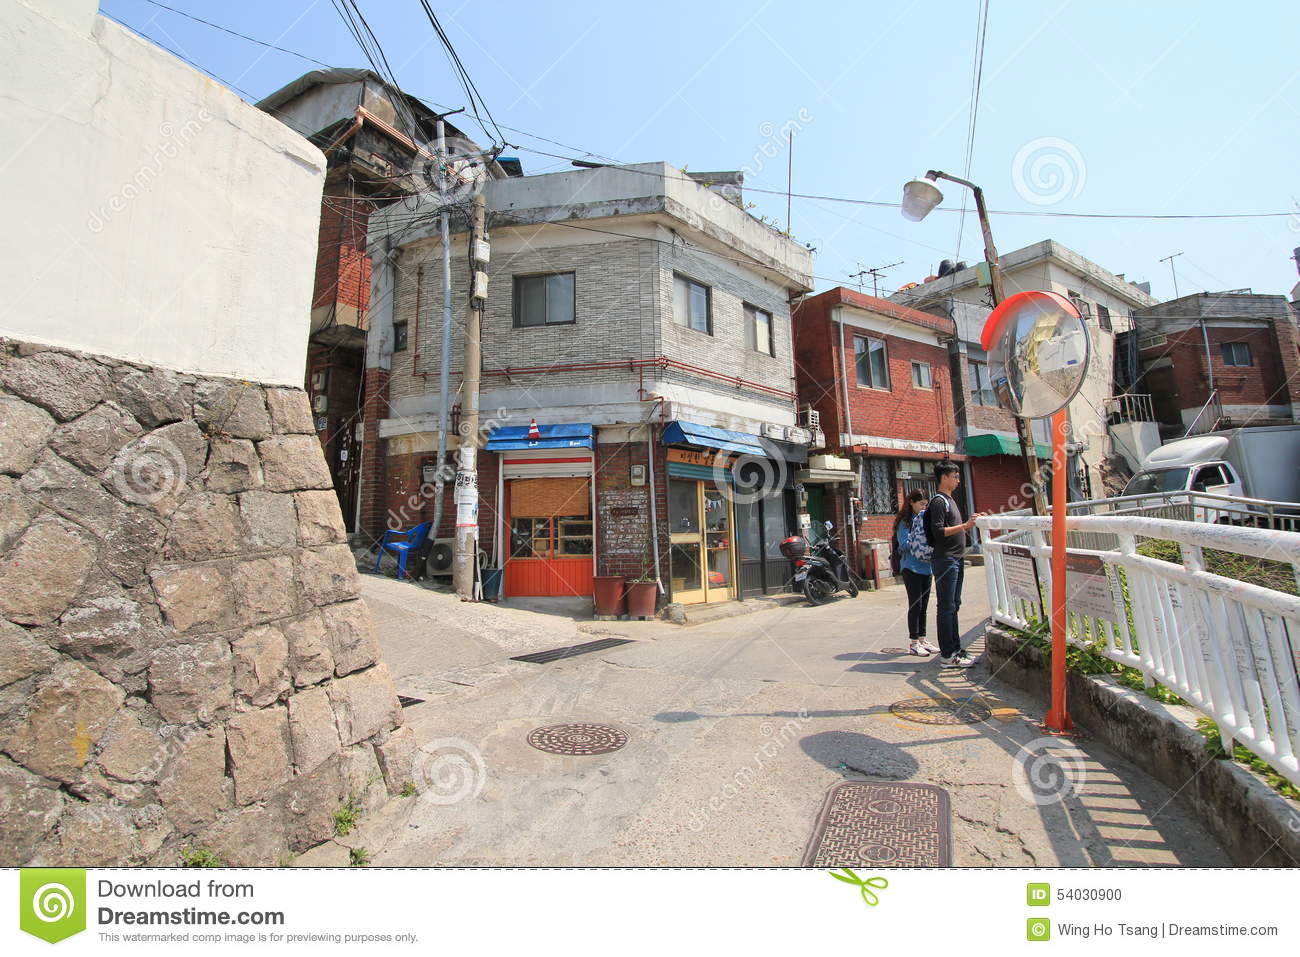 Ihwa mural village in seoul editorial image image 54030900 for Mural village seoul